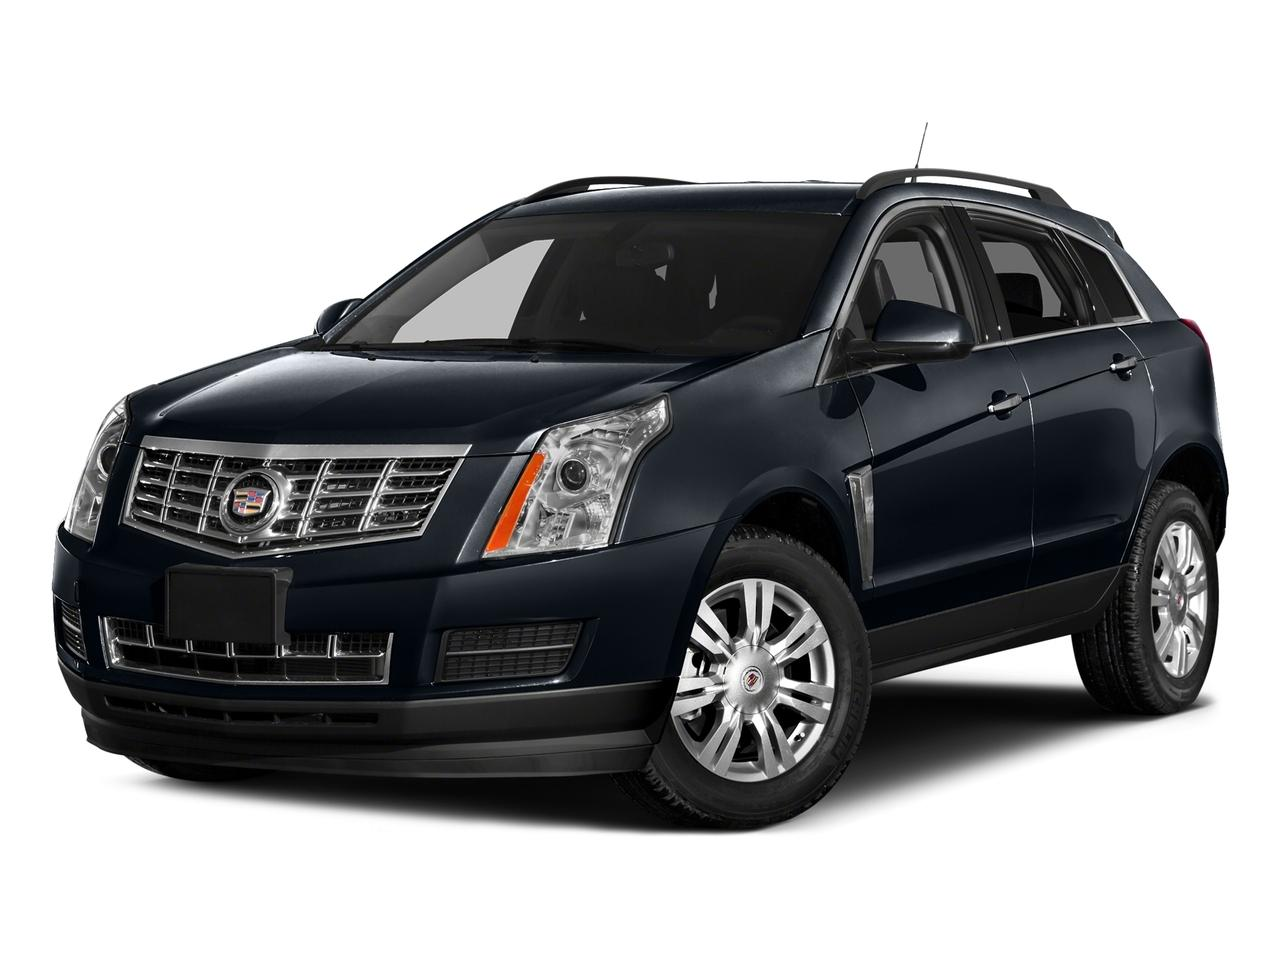 2016 Cadillac SRX Vehicle Photo in Annapolis, MD 21401